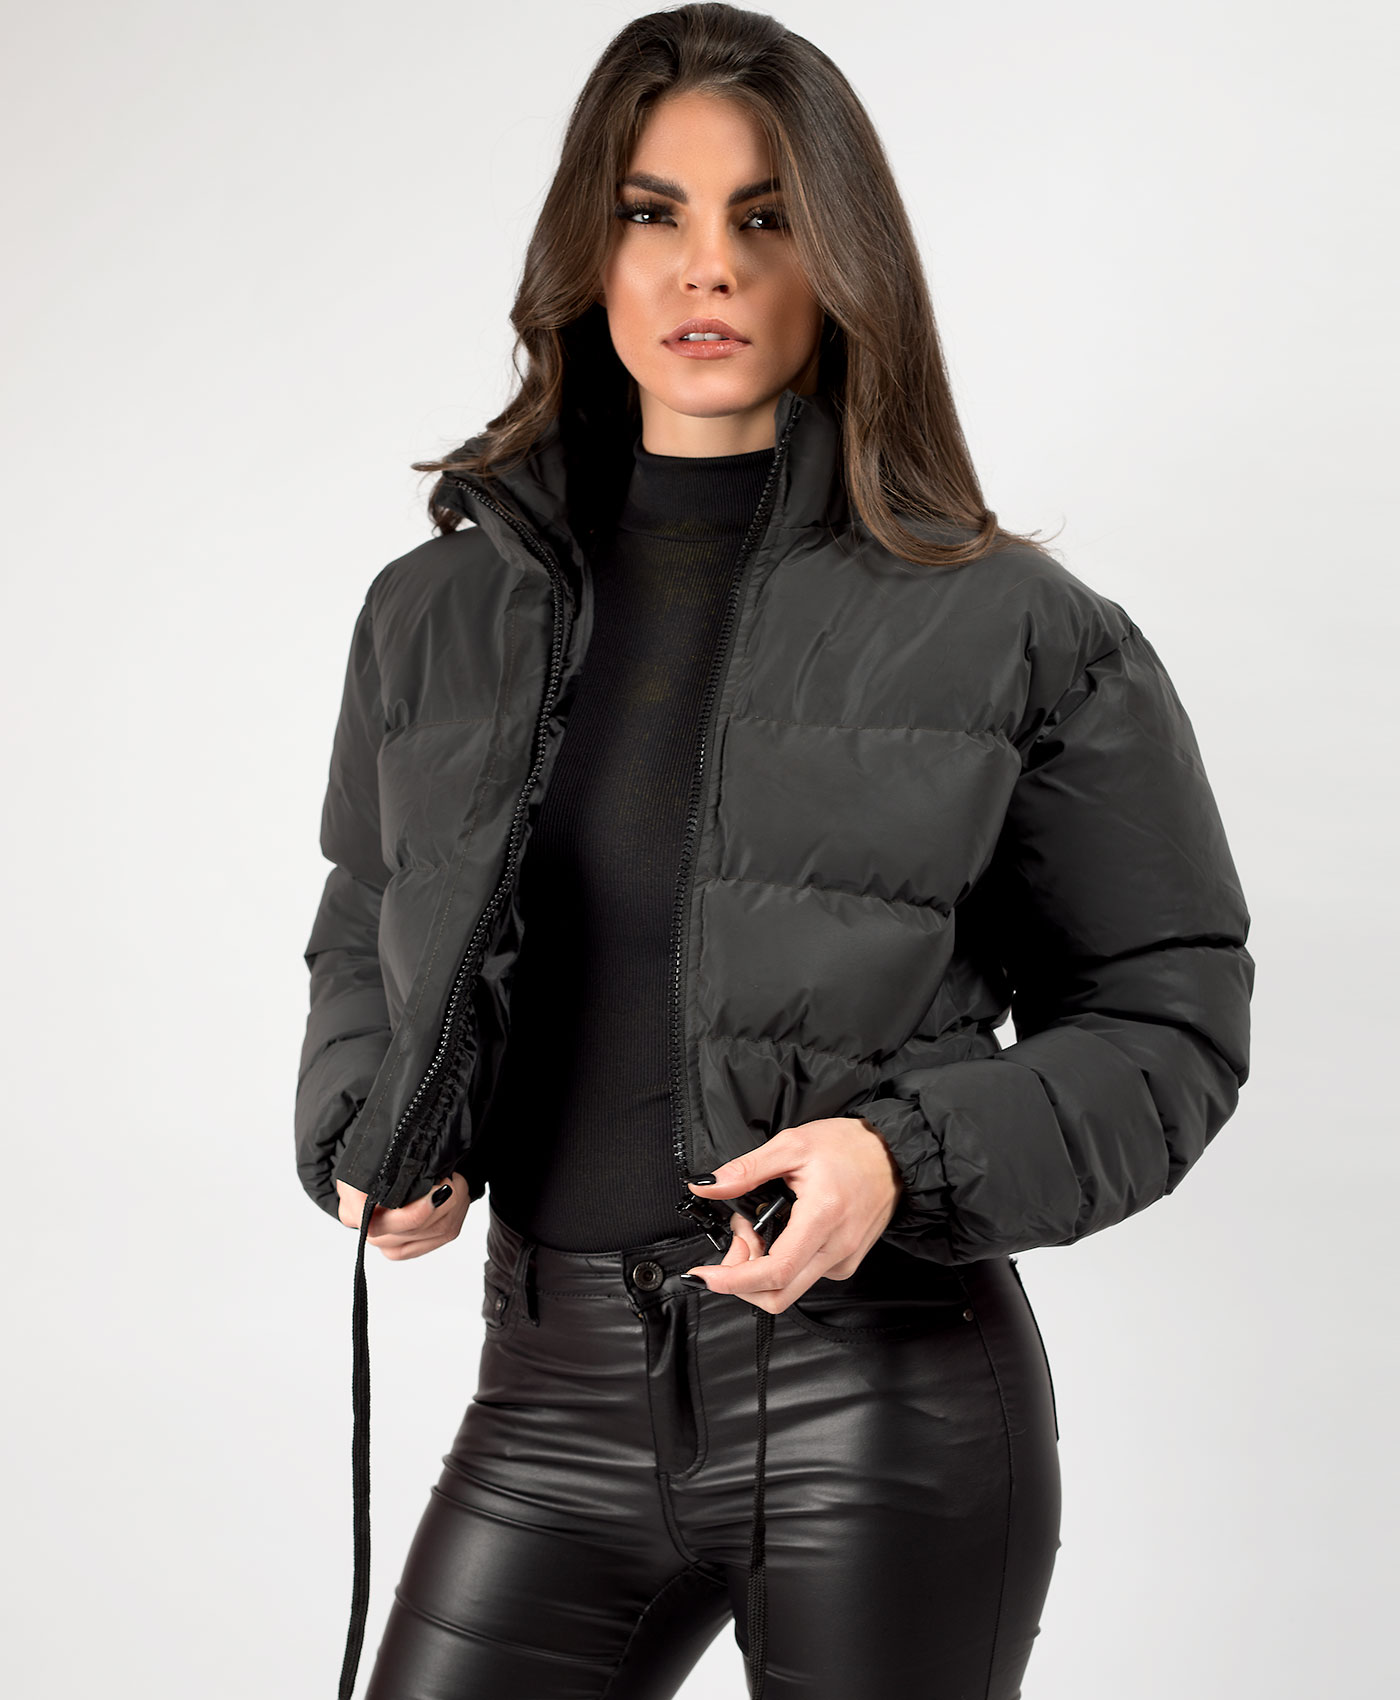 Womens-Reflective-Hi-Visibility-Thick-Puffer-Padded-Quilted-Cropped-Jacket-Coat Indexbild 16